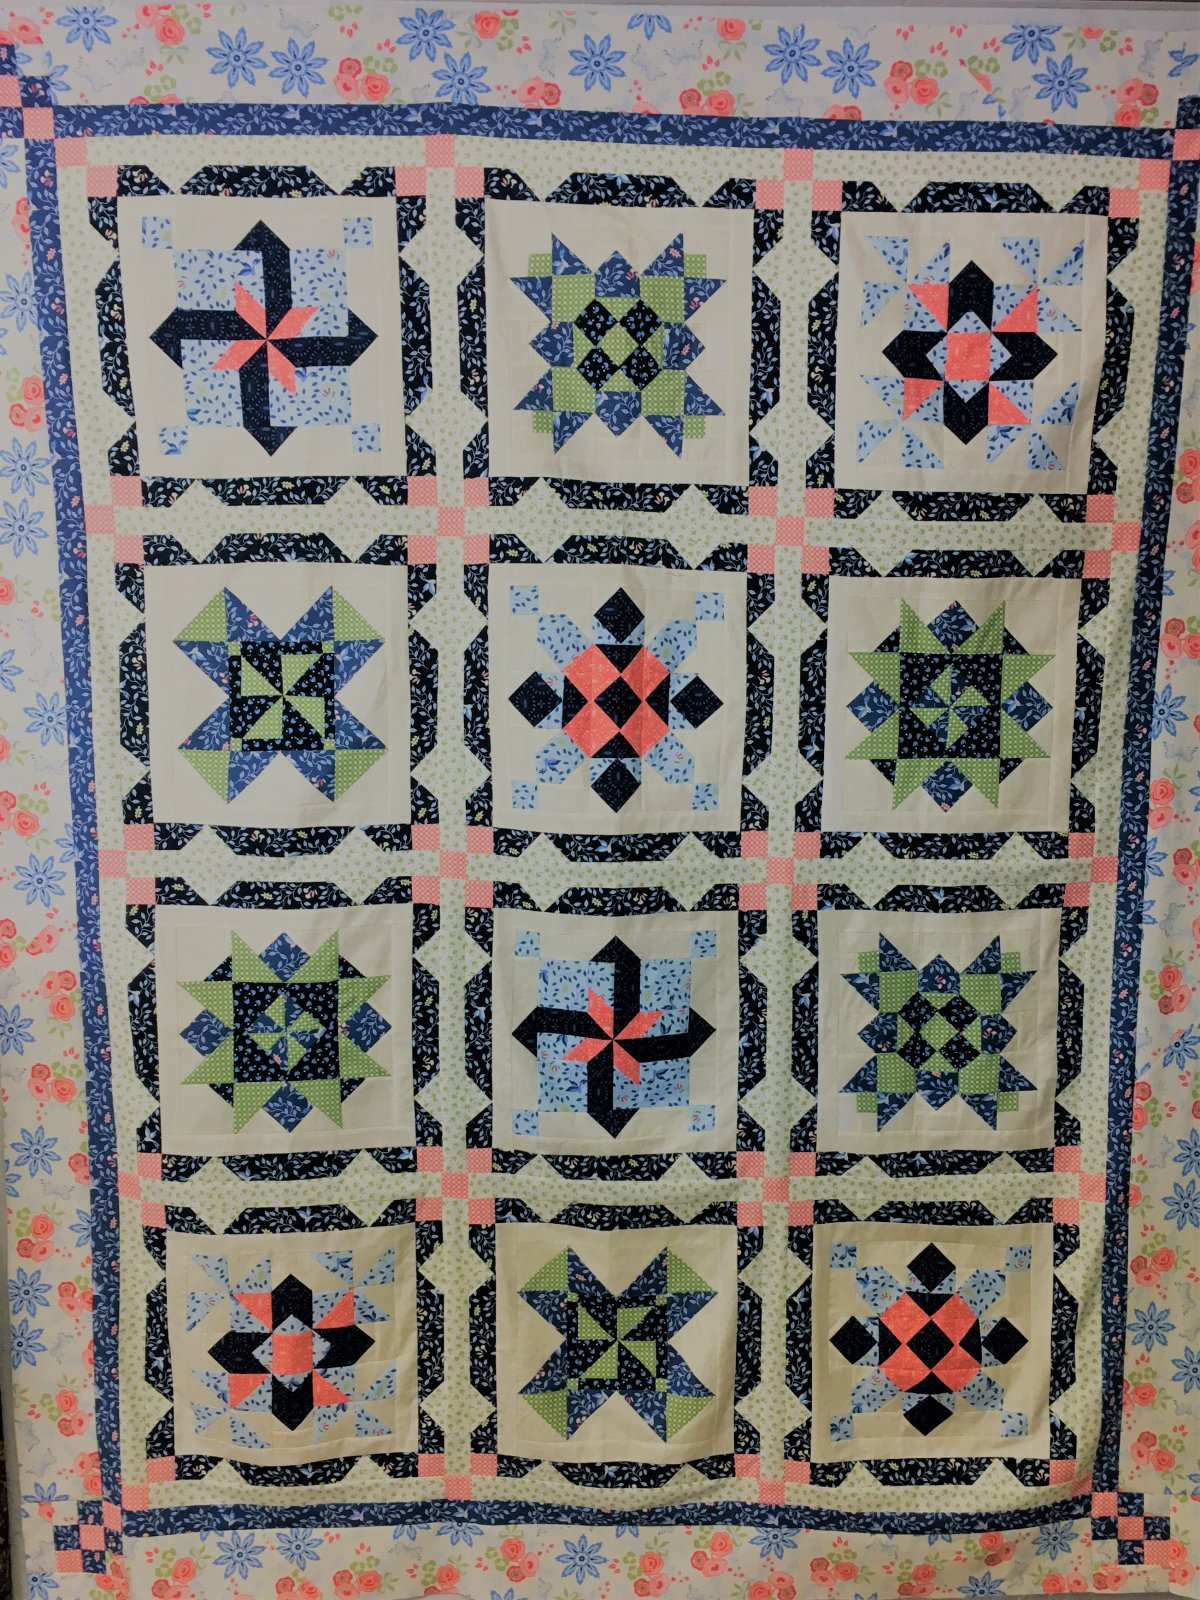 CMBQK1 Count My Blessings Block of the Month 6mos. 59 1/2 x 75 1/4